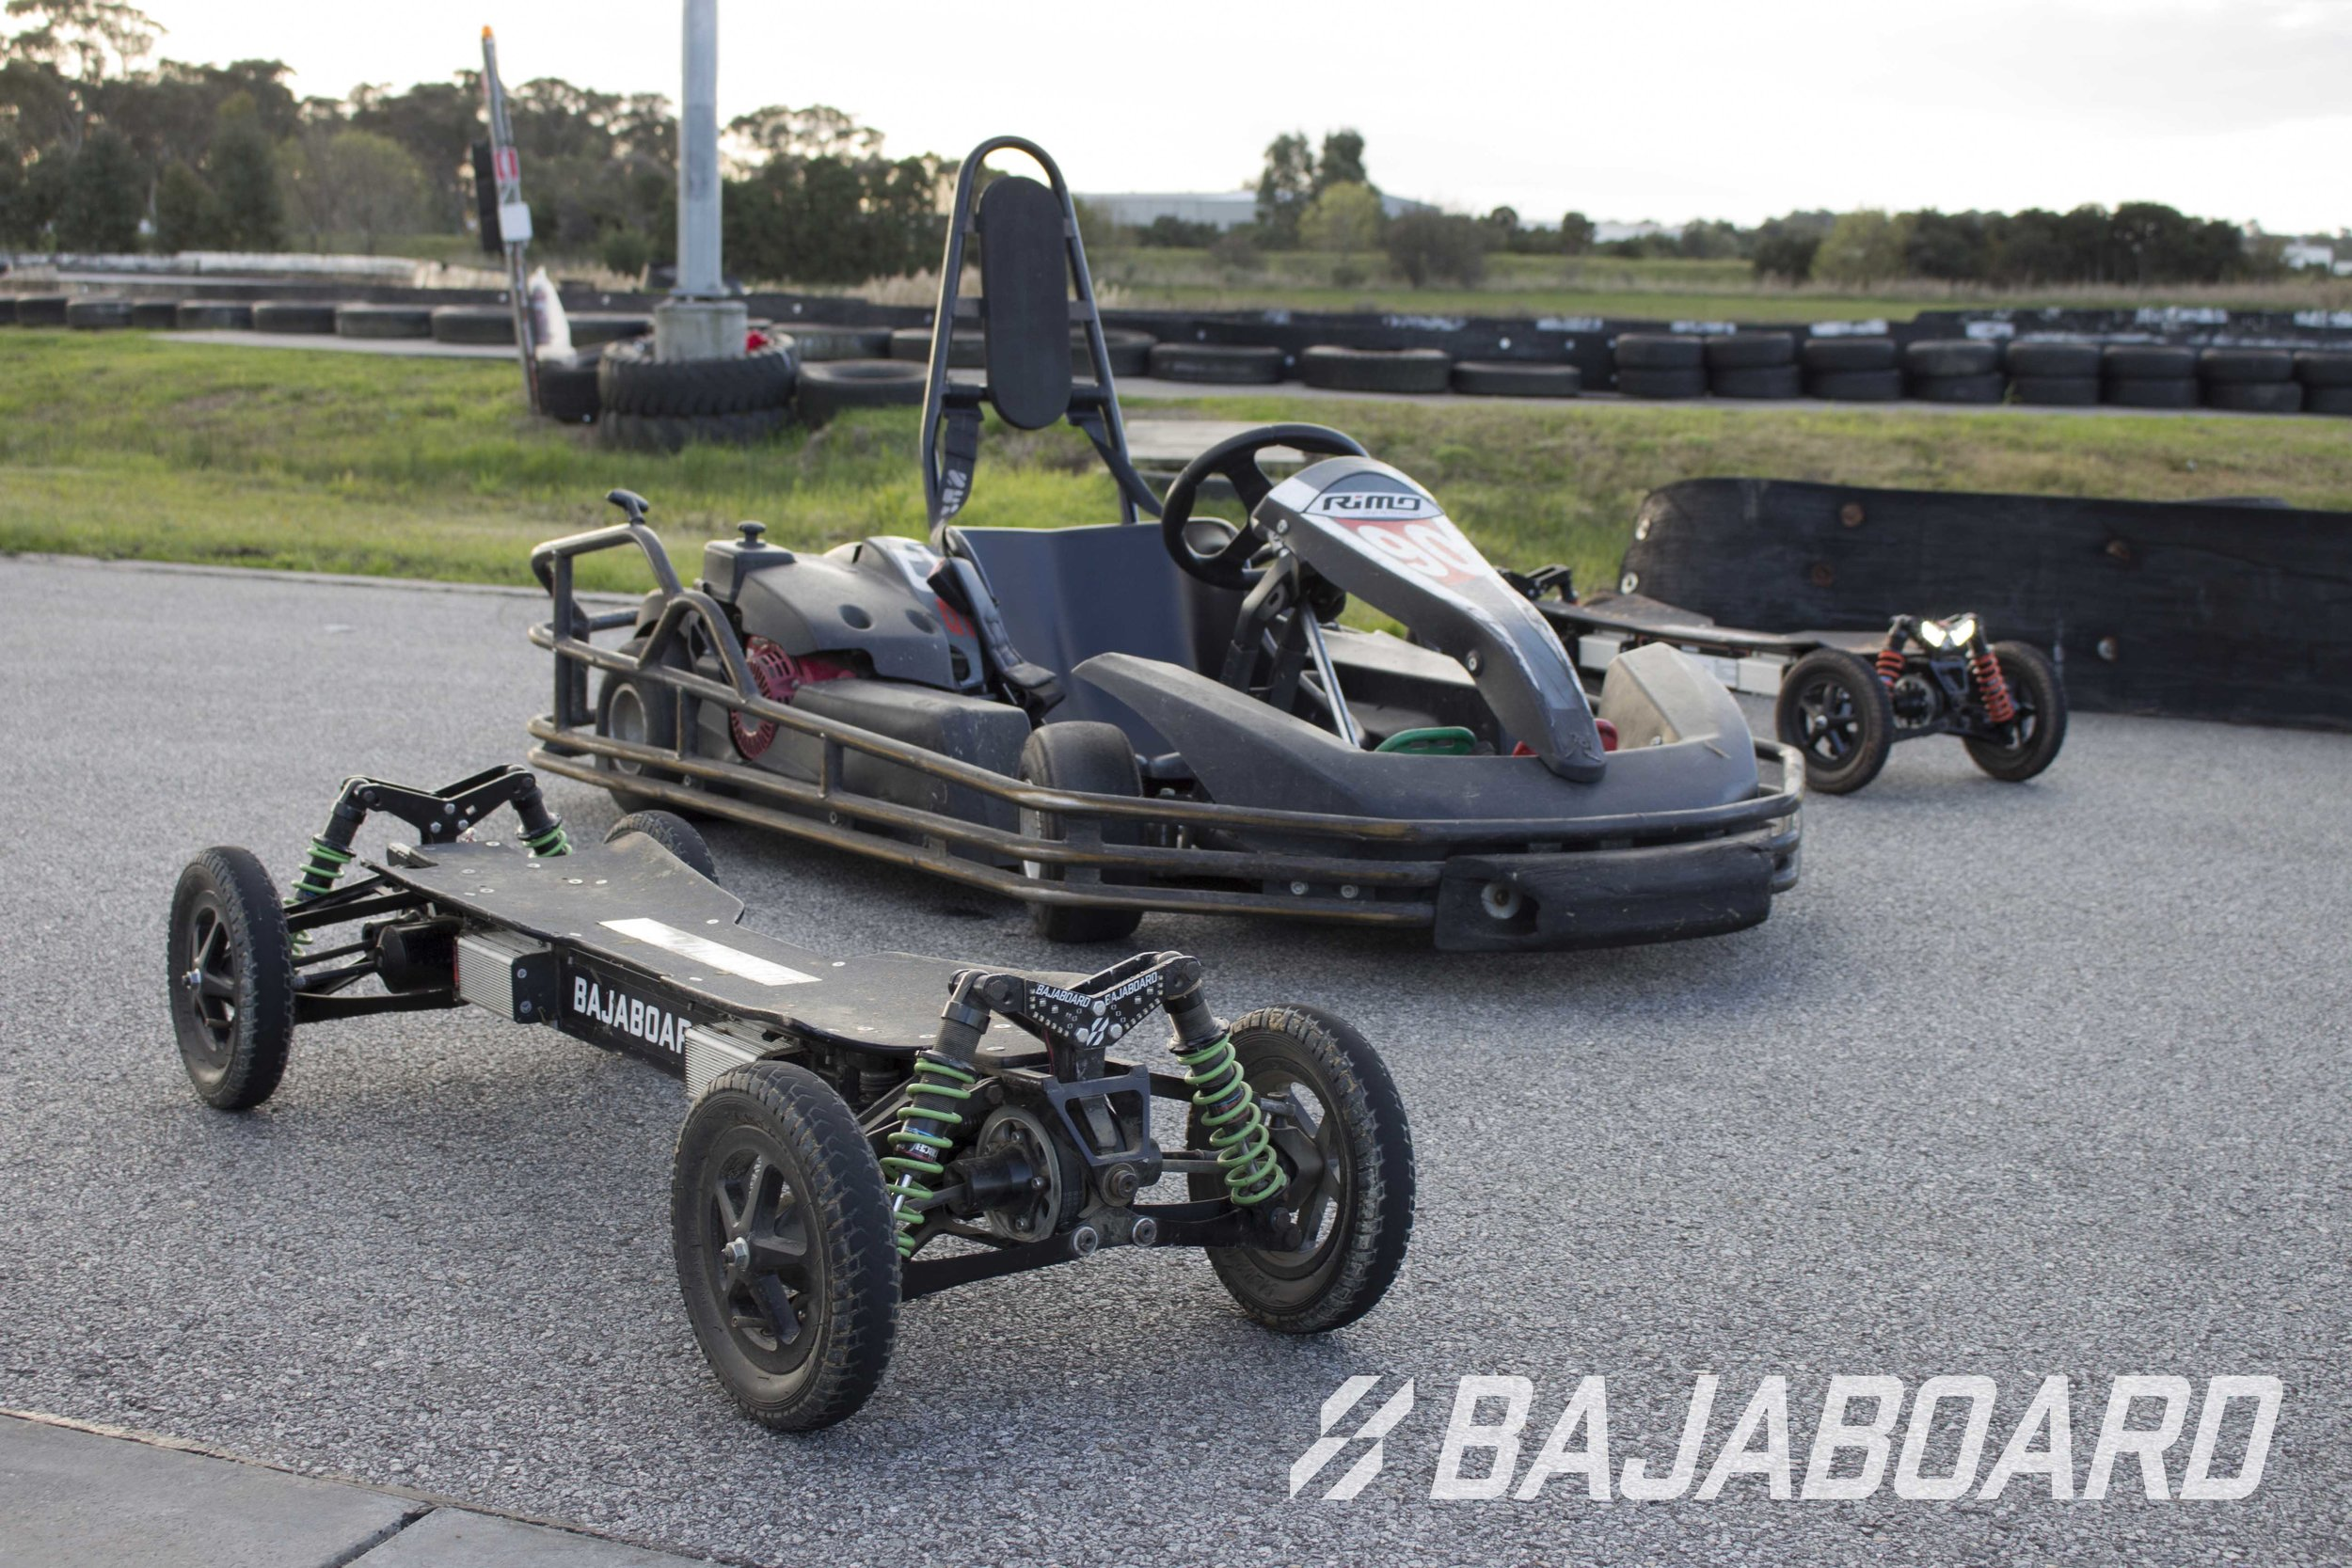 Compare the pair. Electric skateboards and go karts, what would you ride?